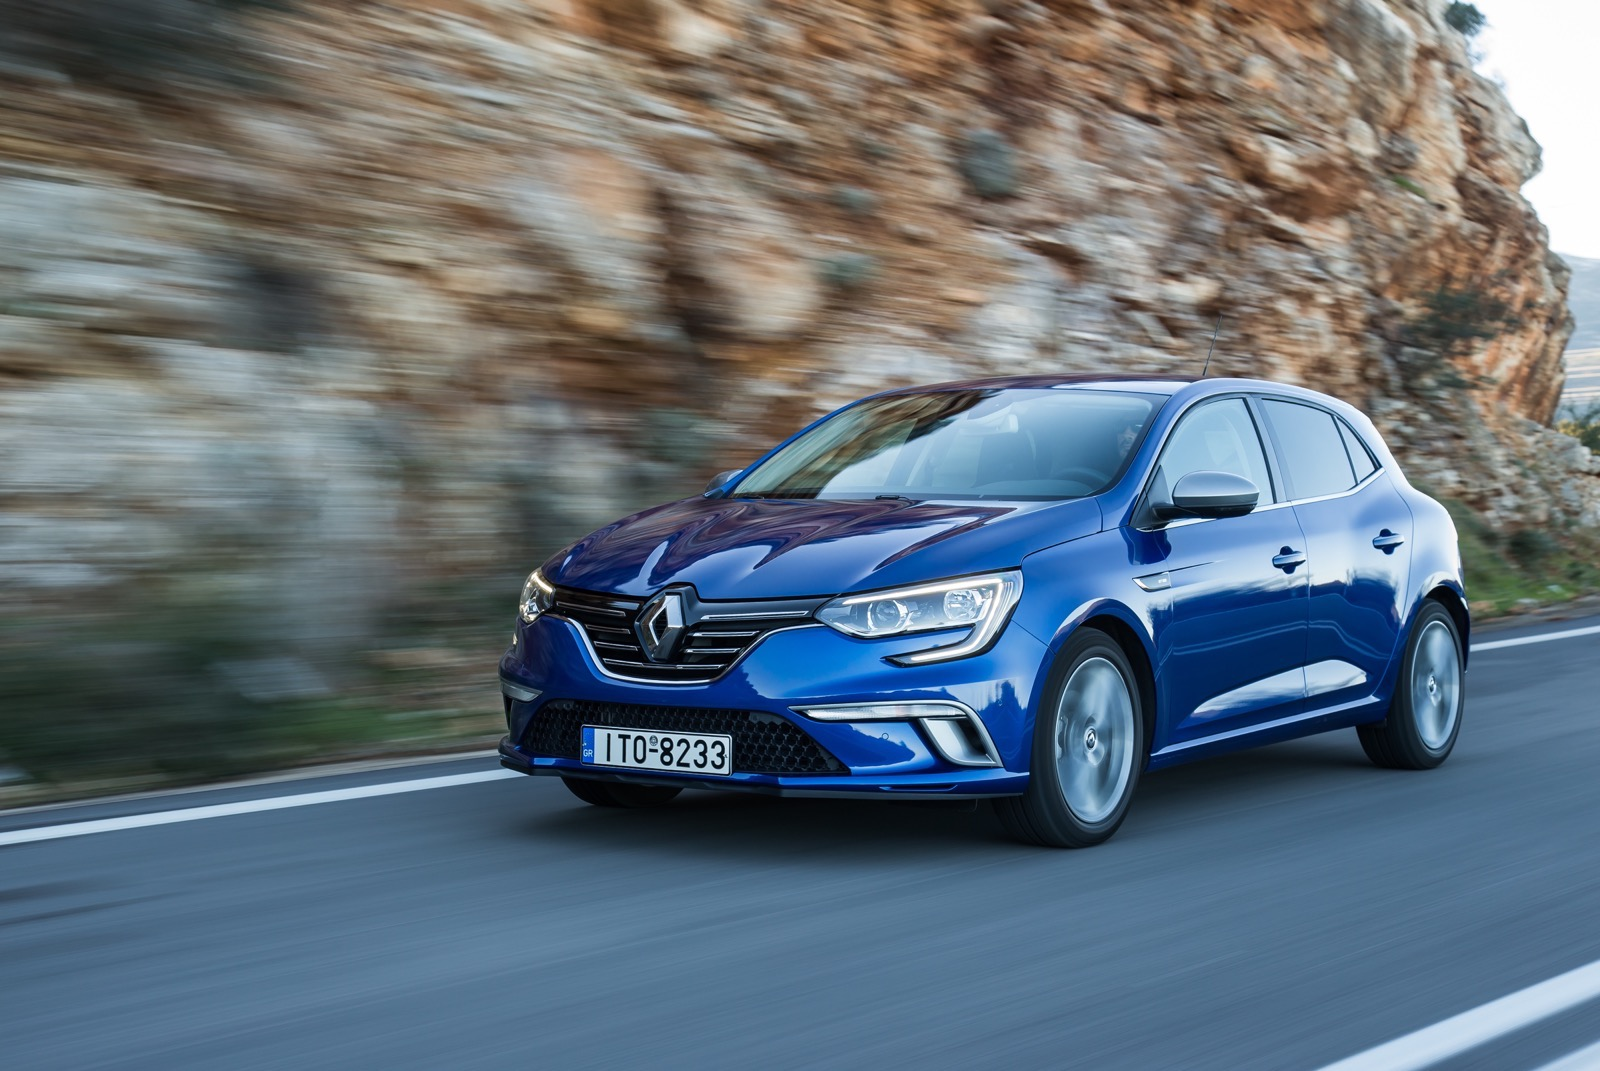 First_Drive_Renault_Megane_87